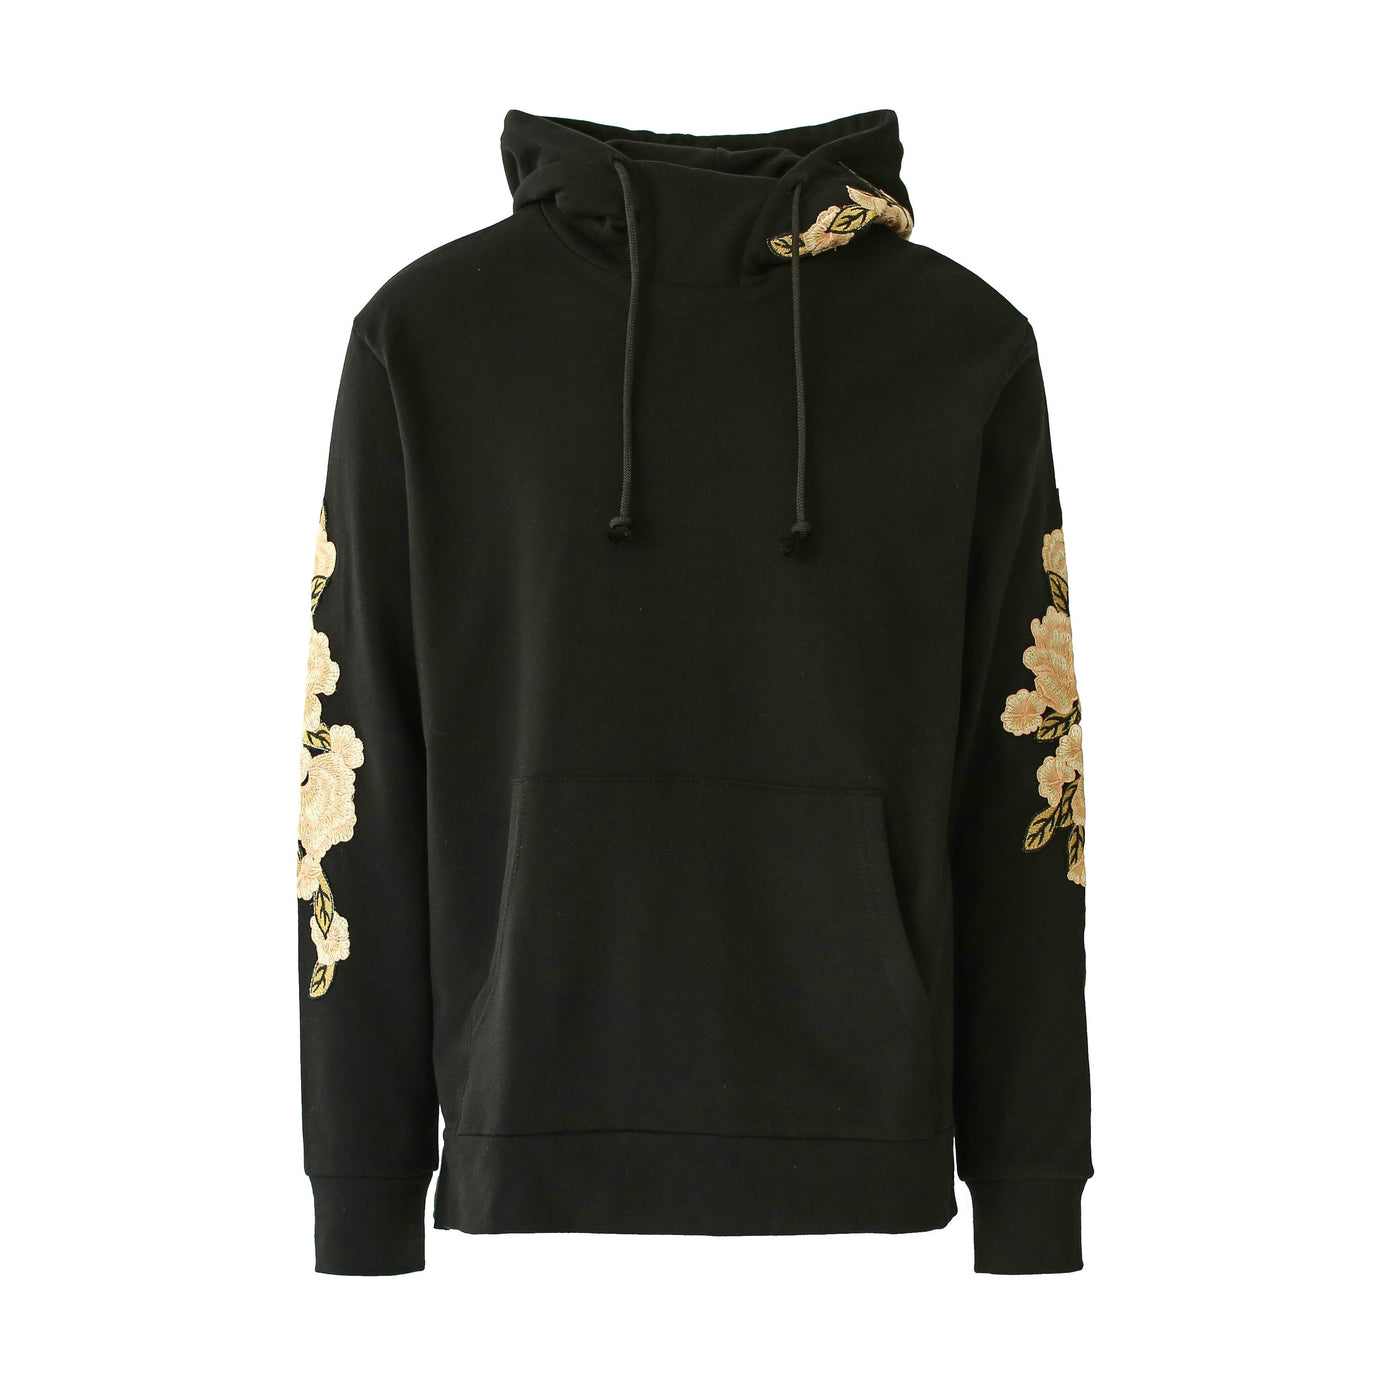 THE LUXE FLORAL HOODIE V.2